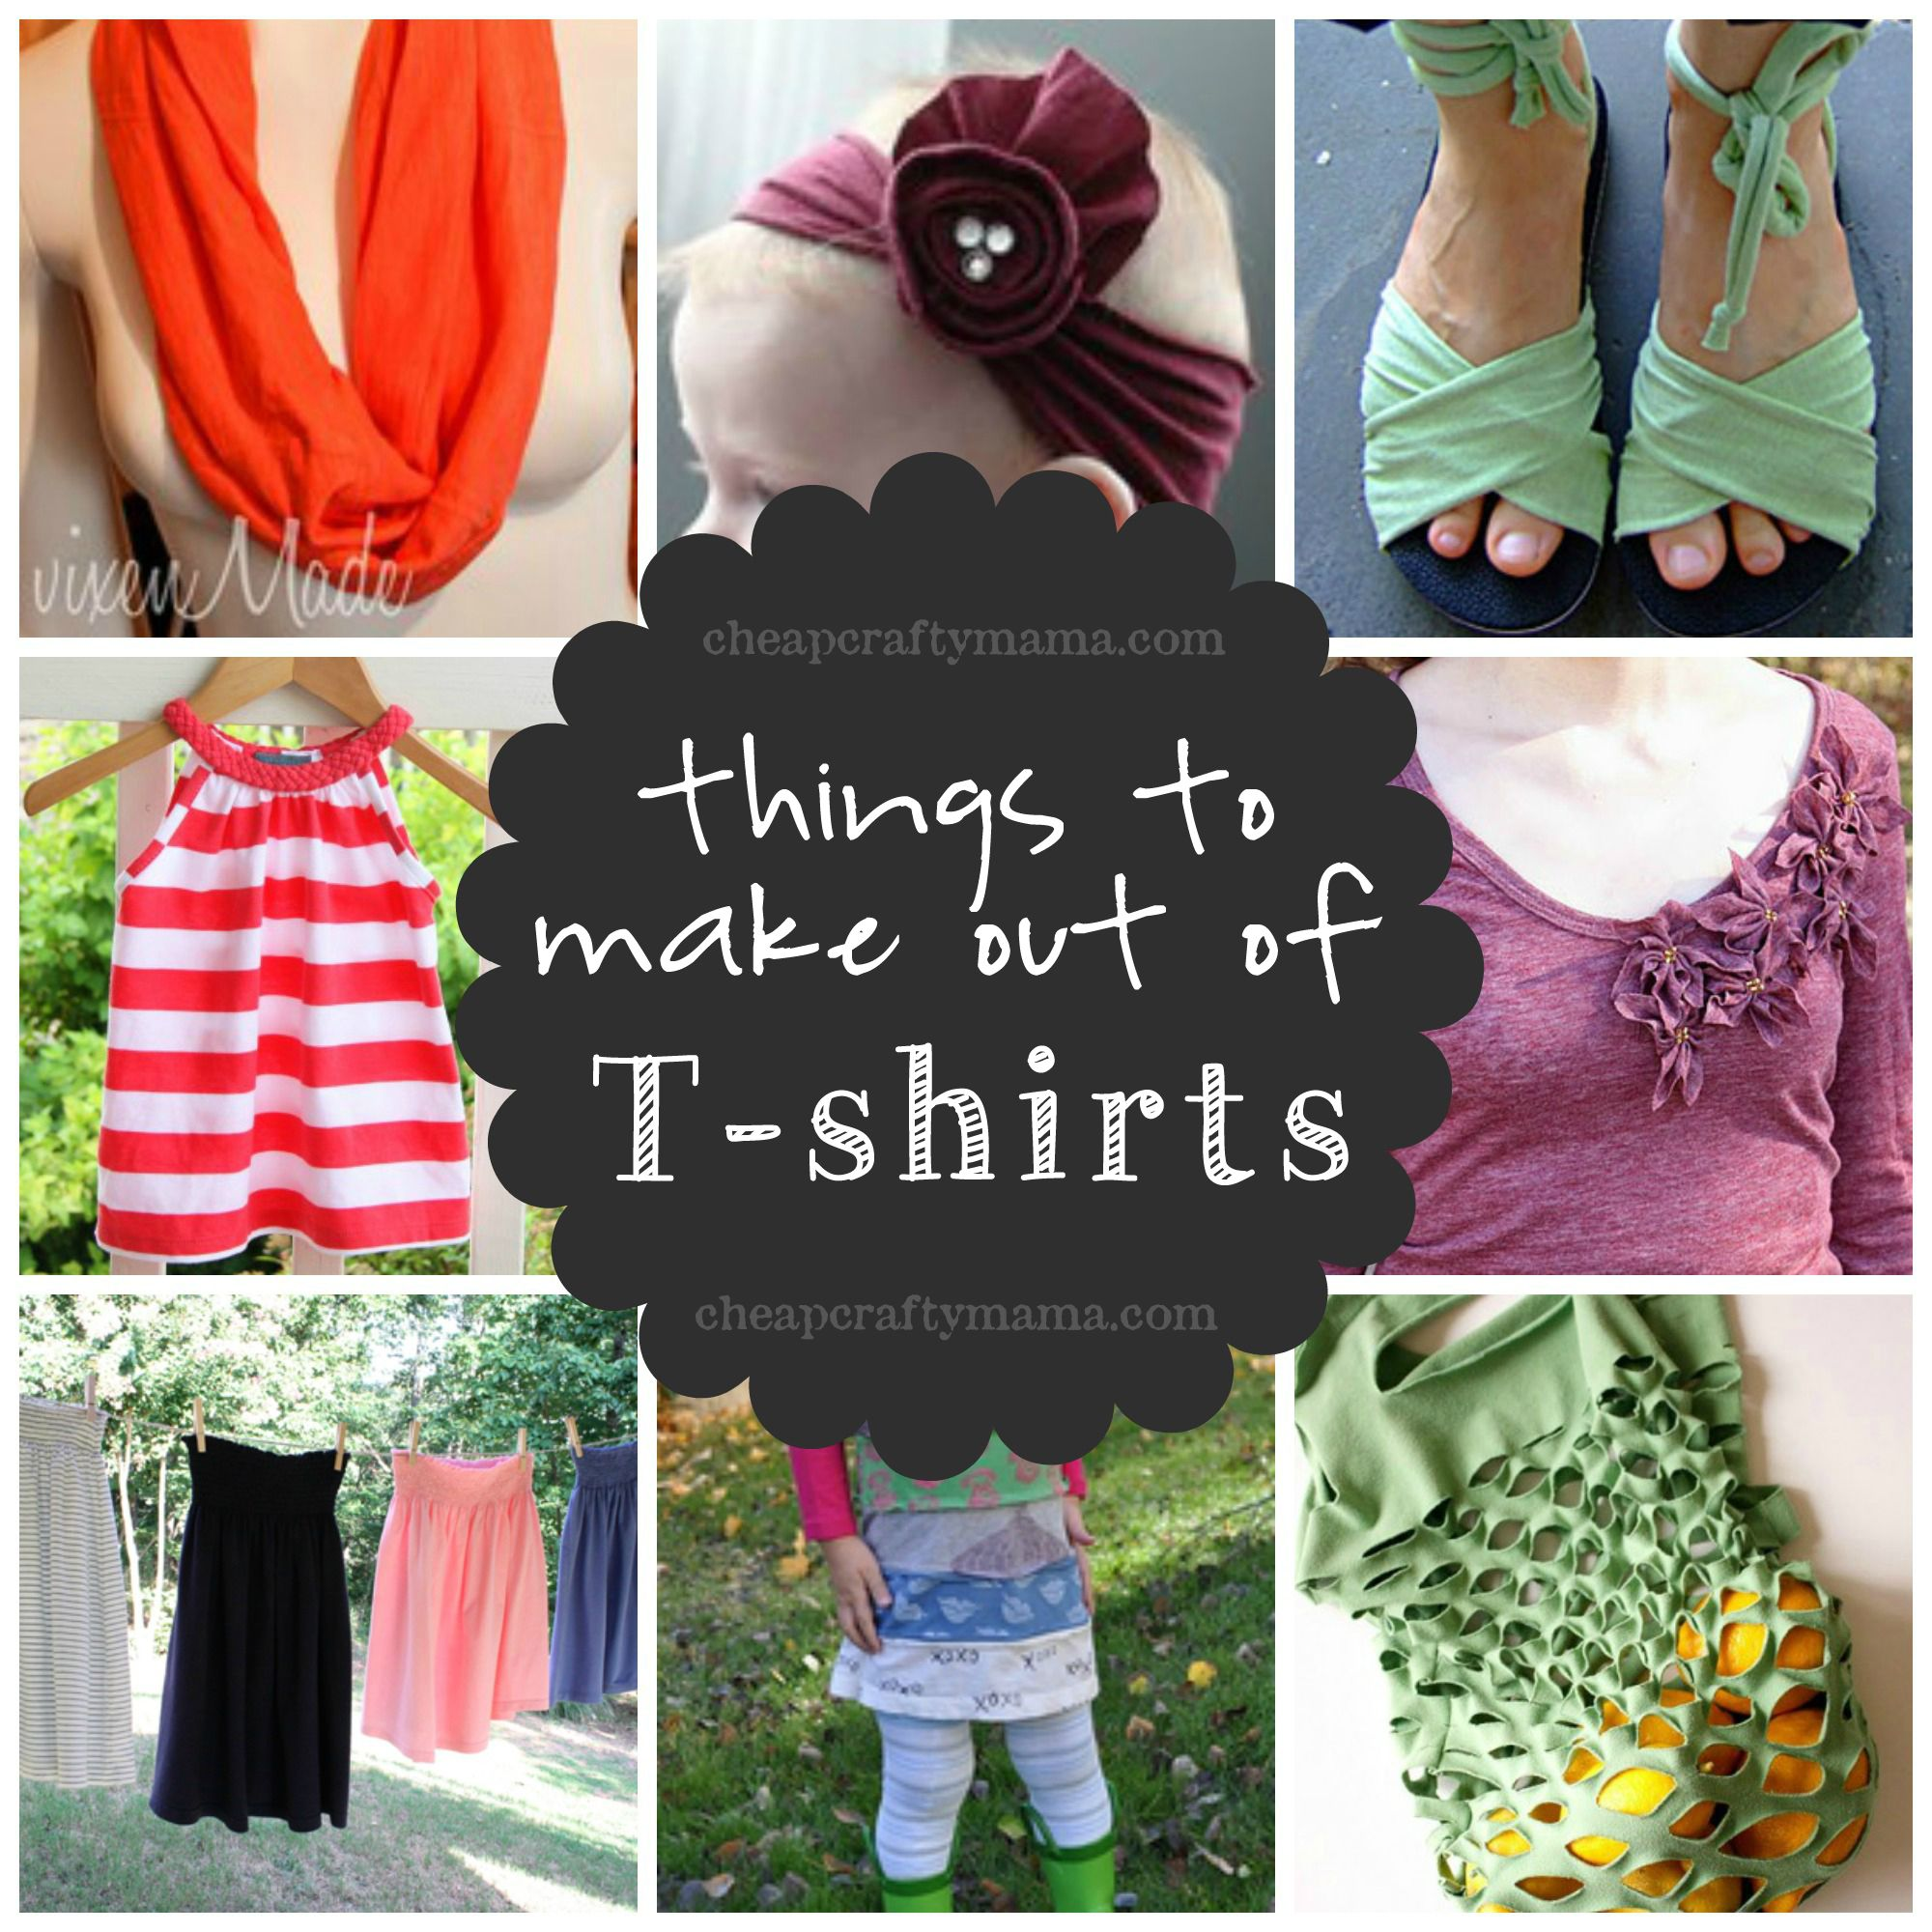 Upcycle Old Clothes Lots Of Cool Things To Make Out Of T Shirts Todays Craft And